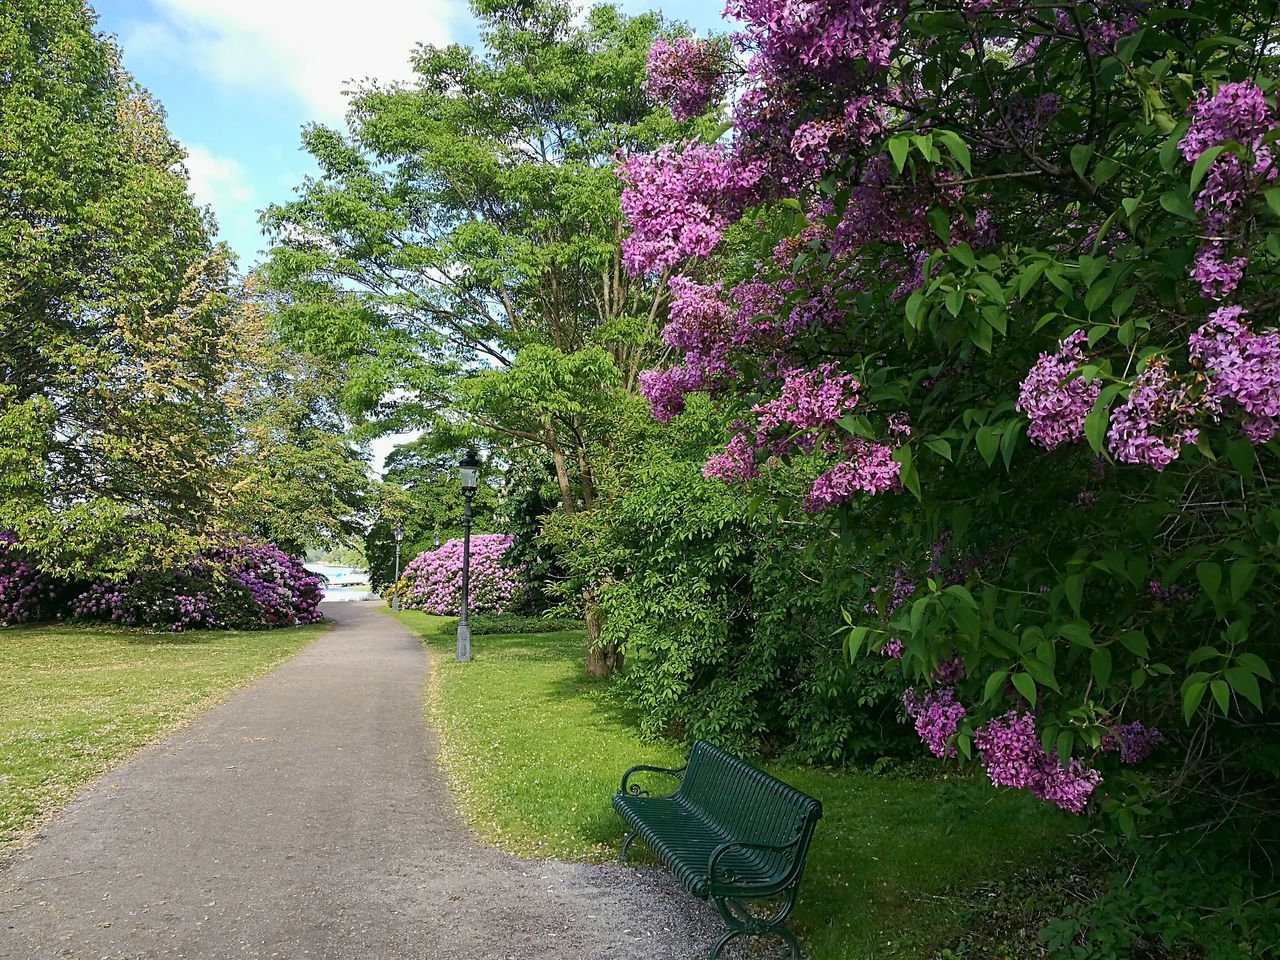 Djurgården Stockholm Sweden Park Park - Man Made Space Nature Beauty In Nature Outdoors Flower Growth Day Tree Shadow Blossoms  Blossoming  Lilacs Bench Park Bench Trees Path Park Path Smartphone Photography Grass Freshness Lilac Blossoms